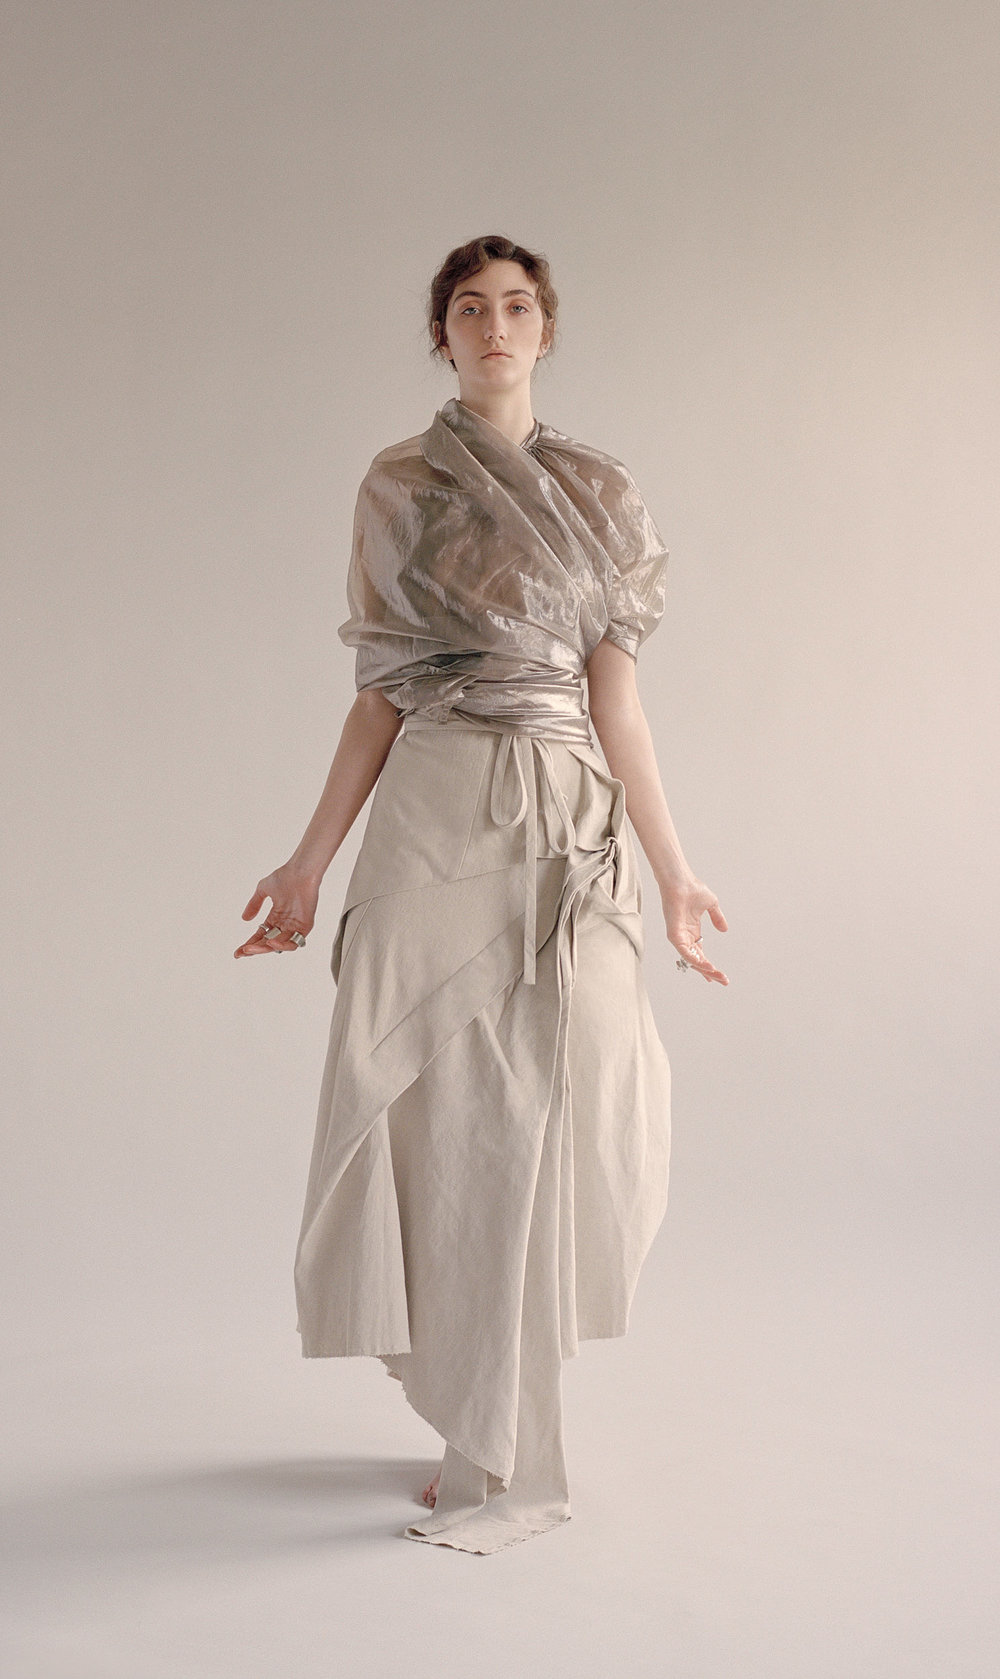 Golden Organza Cape worn as a top from Rellik, Beige Linen Folding Skirt by Renli Su, Silver & Quartz rings by Gala Colivet Dennison